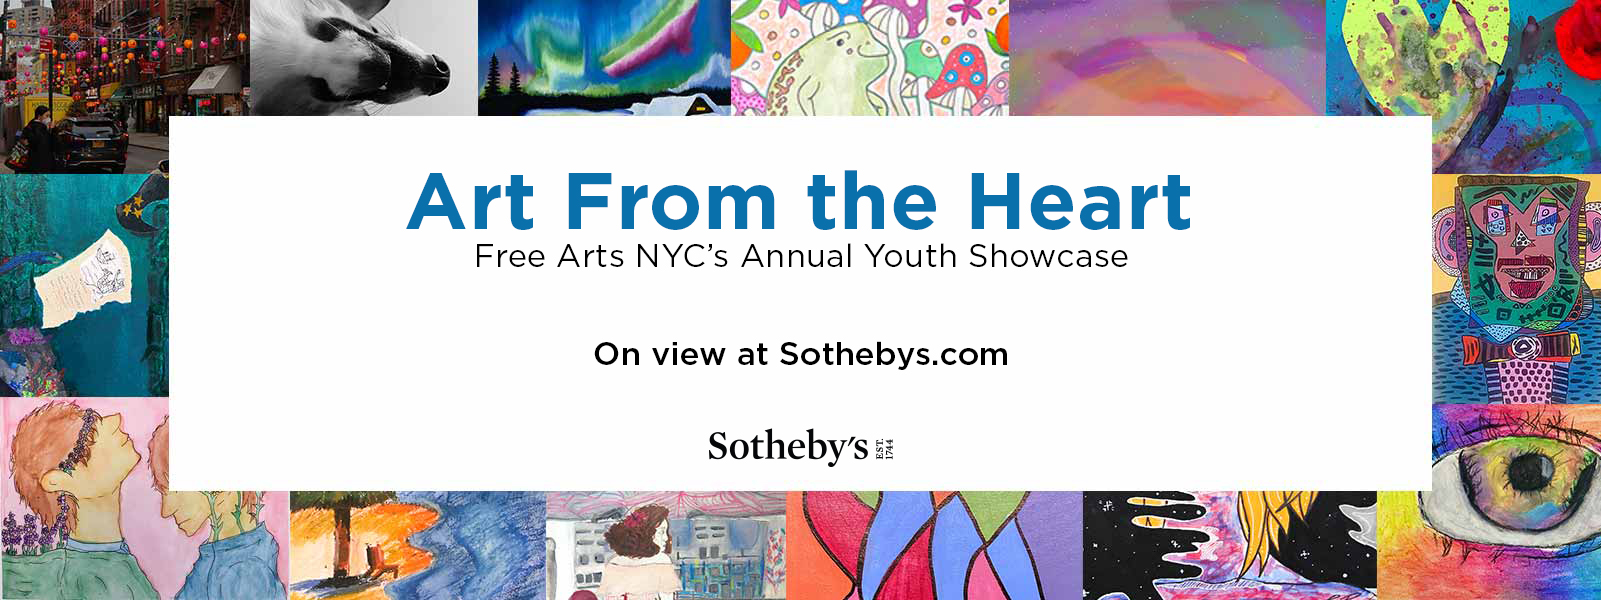 Art from the heart youth showcase